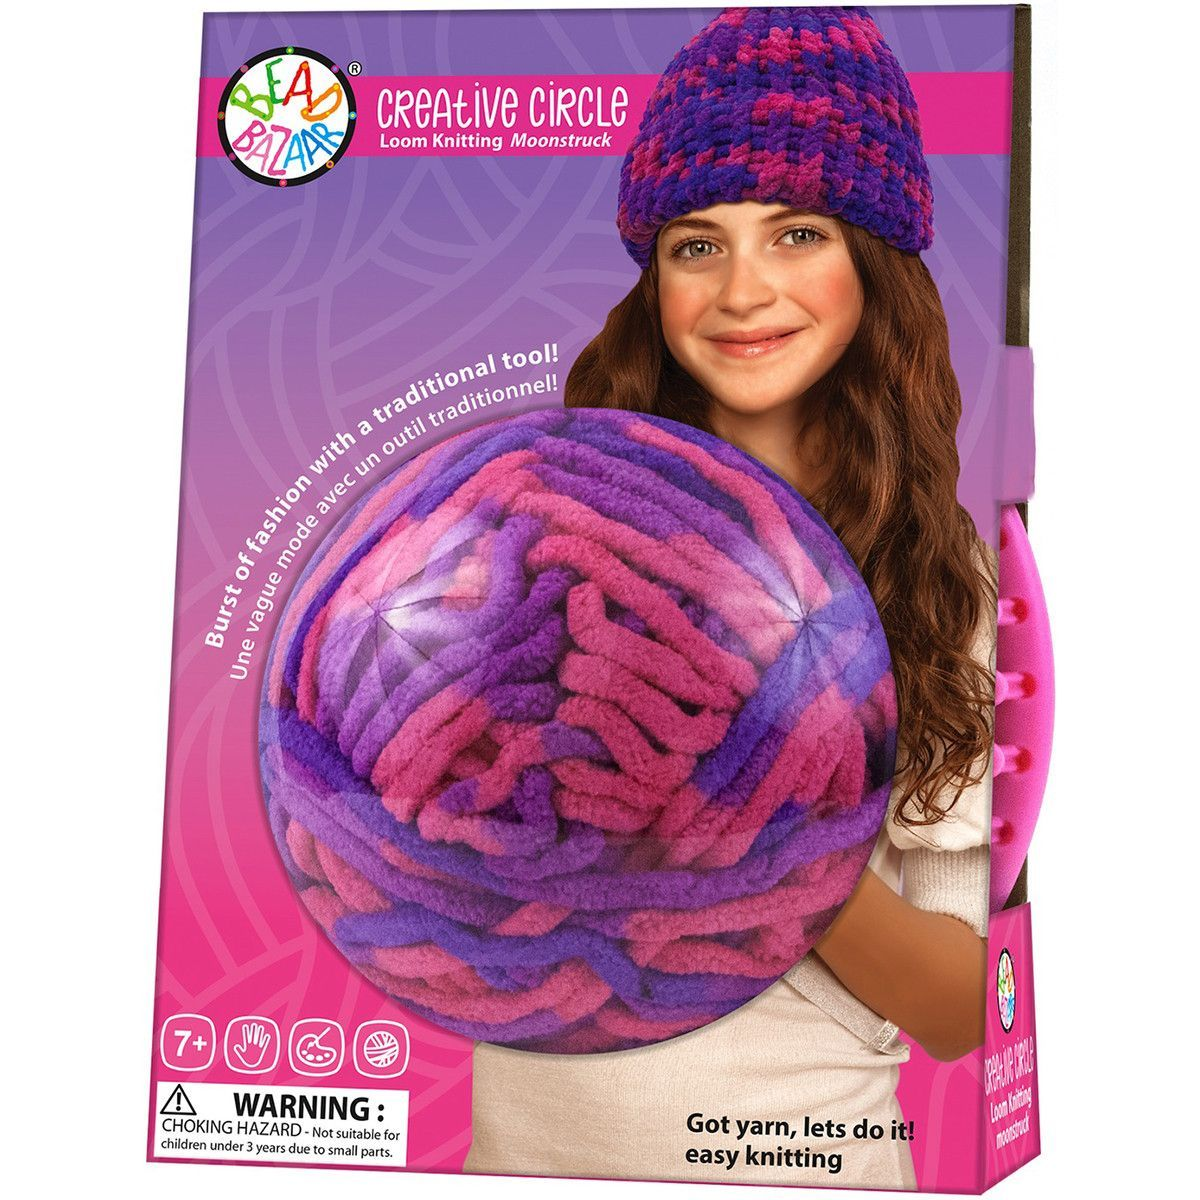 Creative Circle Loom Knitting Kit Moonstruck Products Pinterest